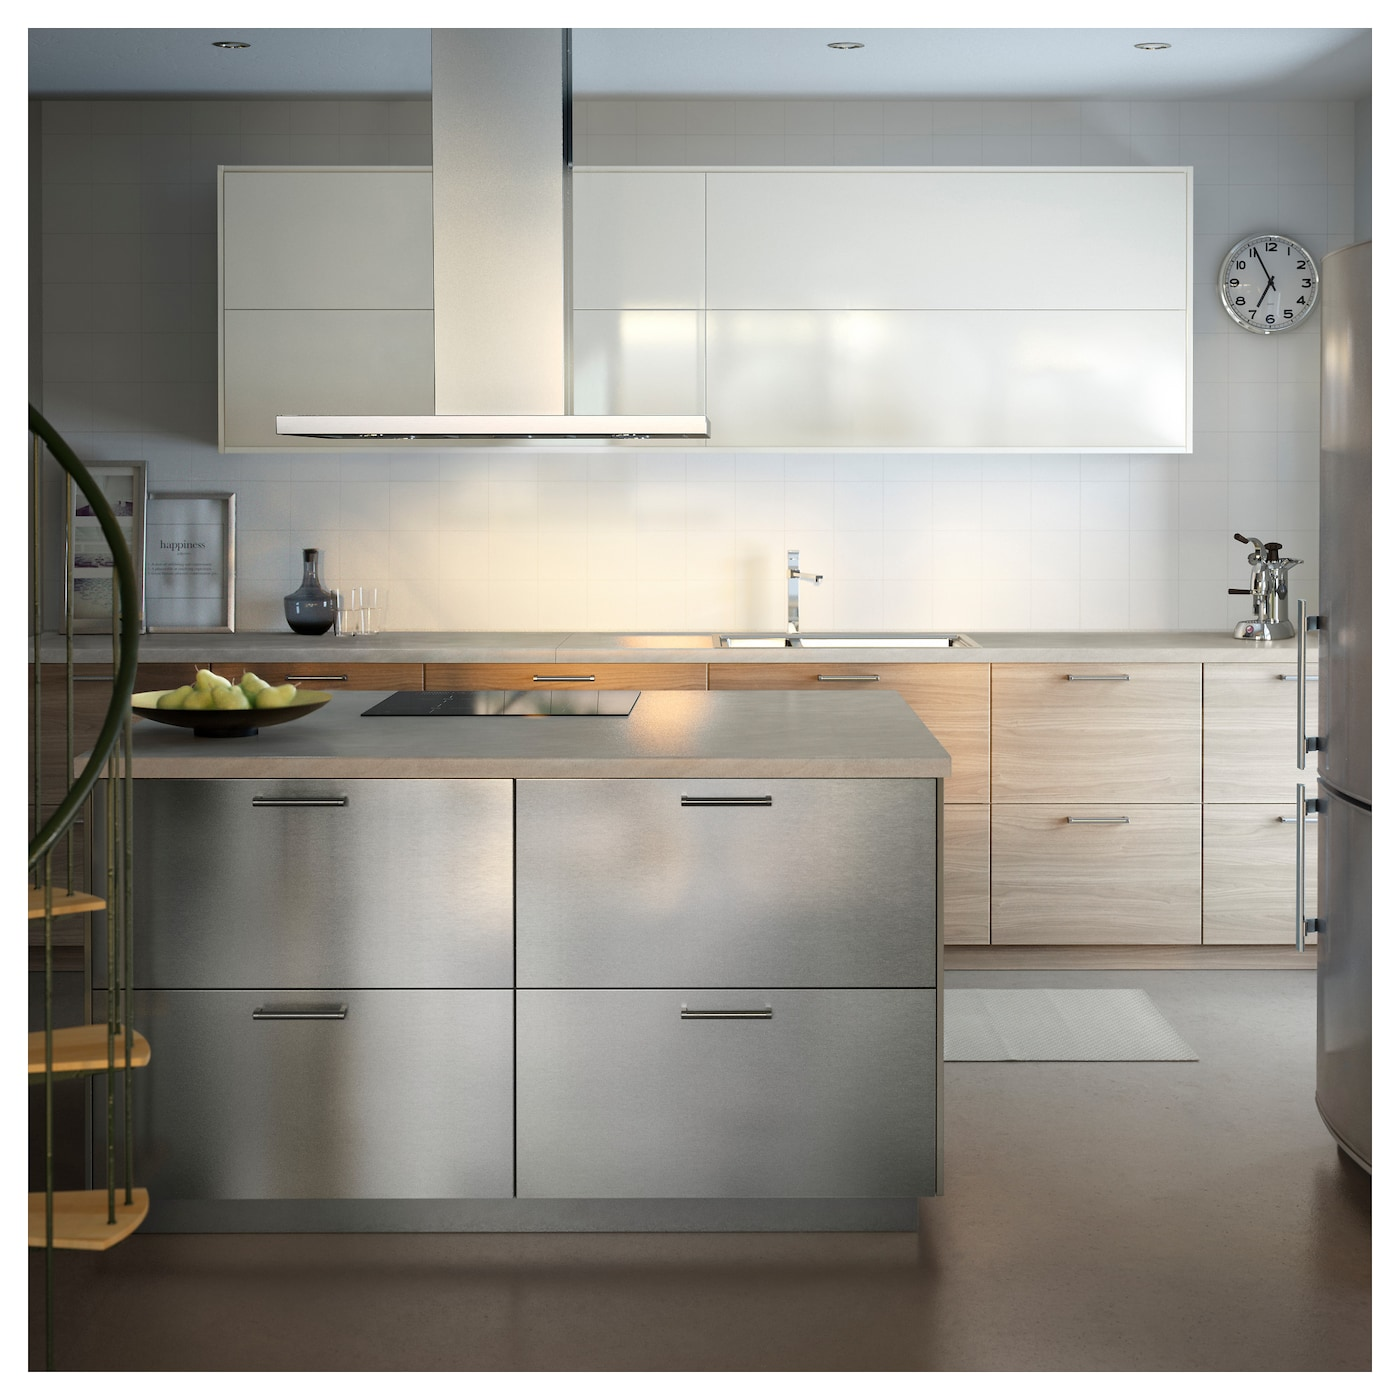 stainless kitchen cabinet doors grevsta door stainless steel 40 x 80 cm ikea 26602